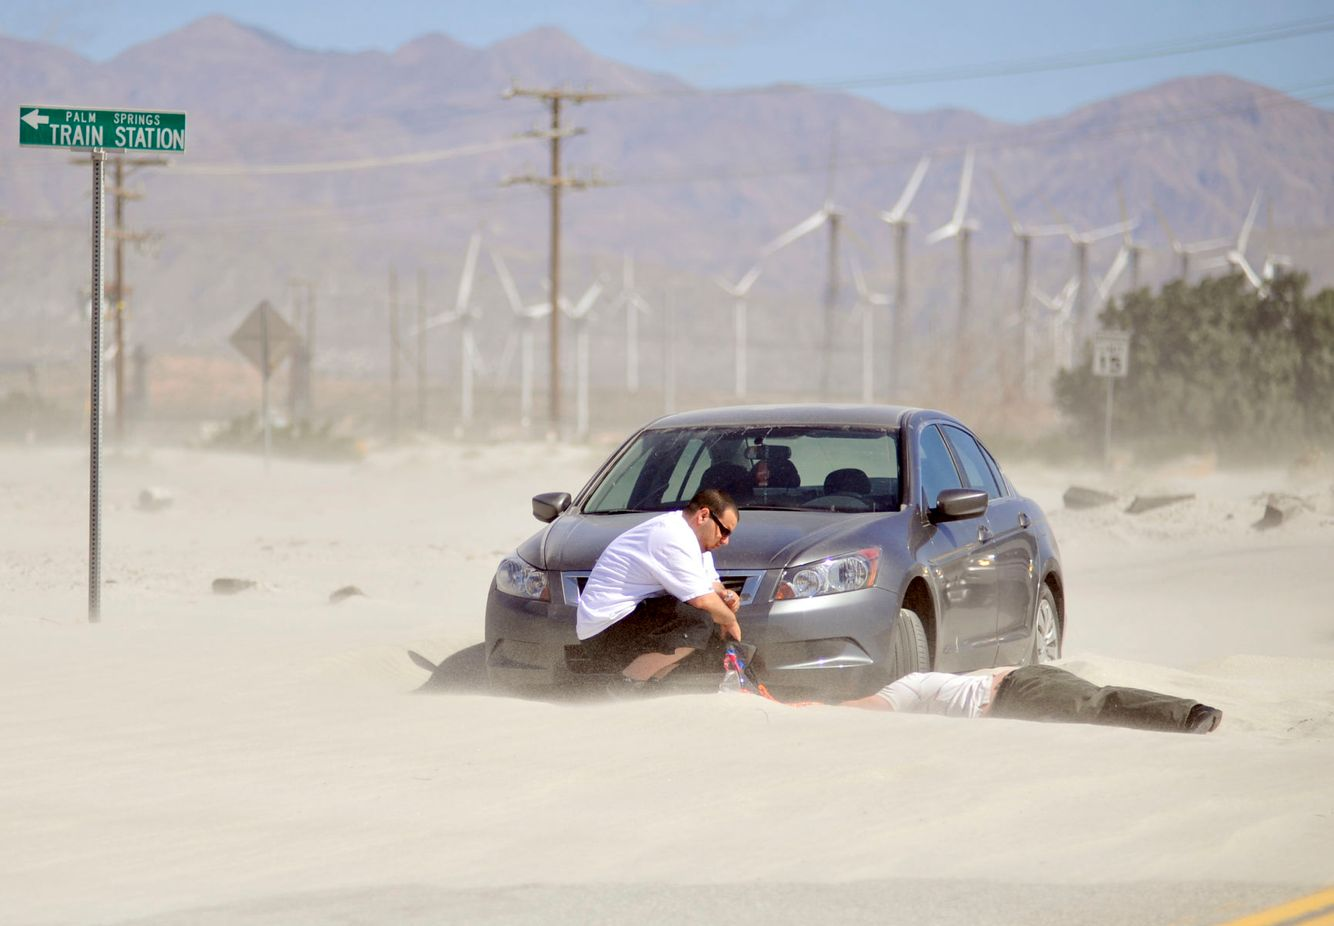 WEATHER: High winds paralyze a car as sand dunes take over a road in Palm Springs.